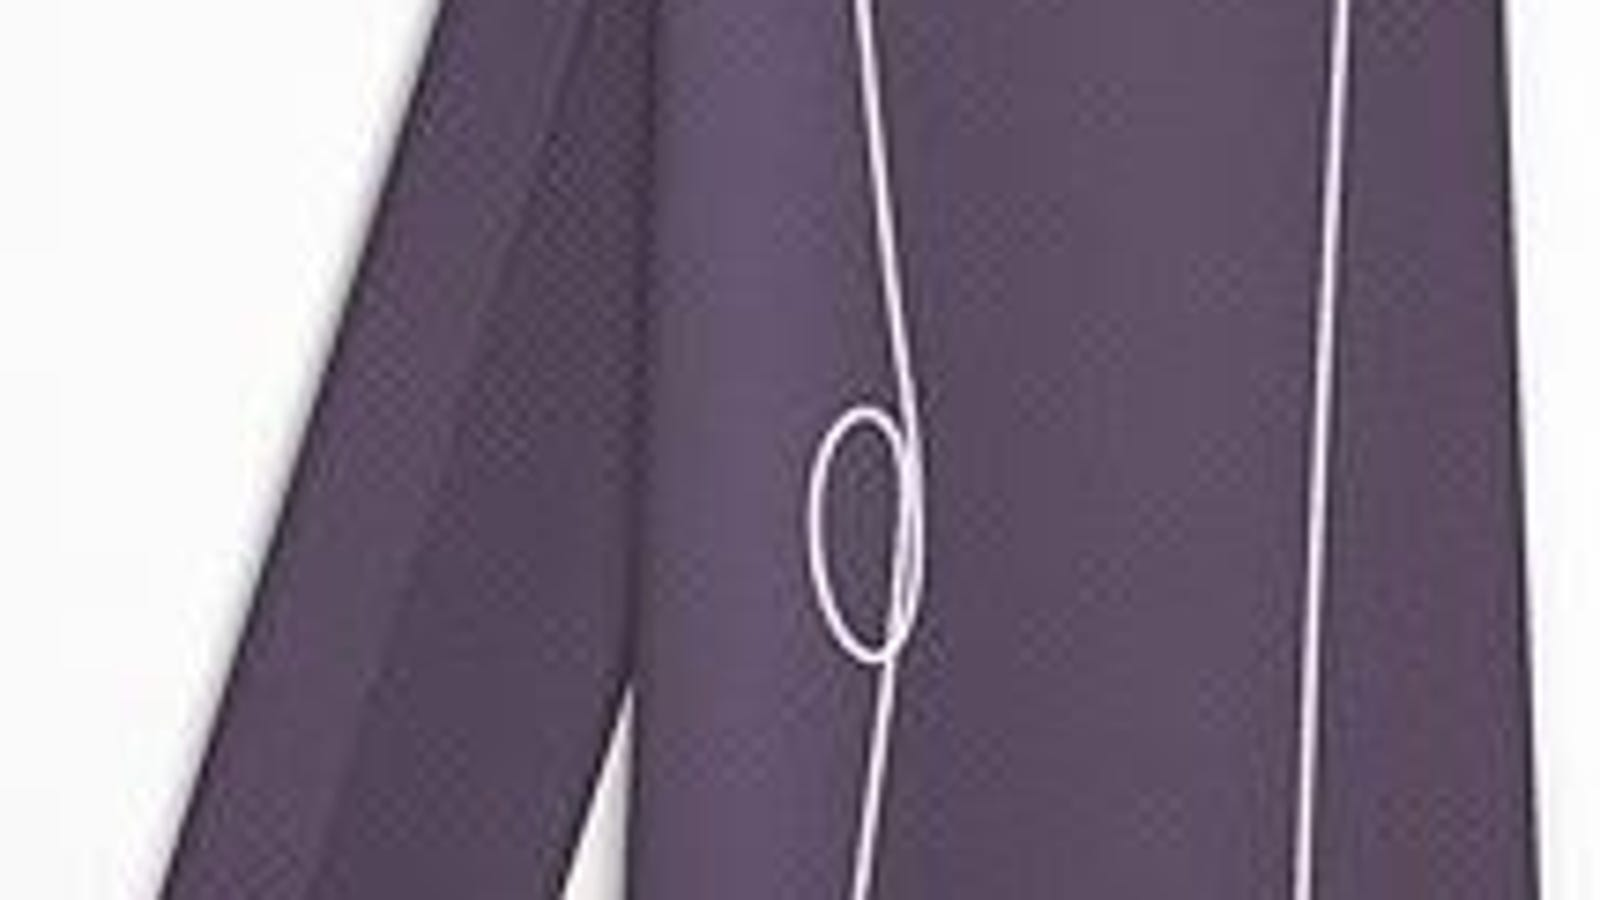 iphone earbuds diffrent colors - Earbuds Tie Makes it Look Like You Have Headphones Around Your Neck